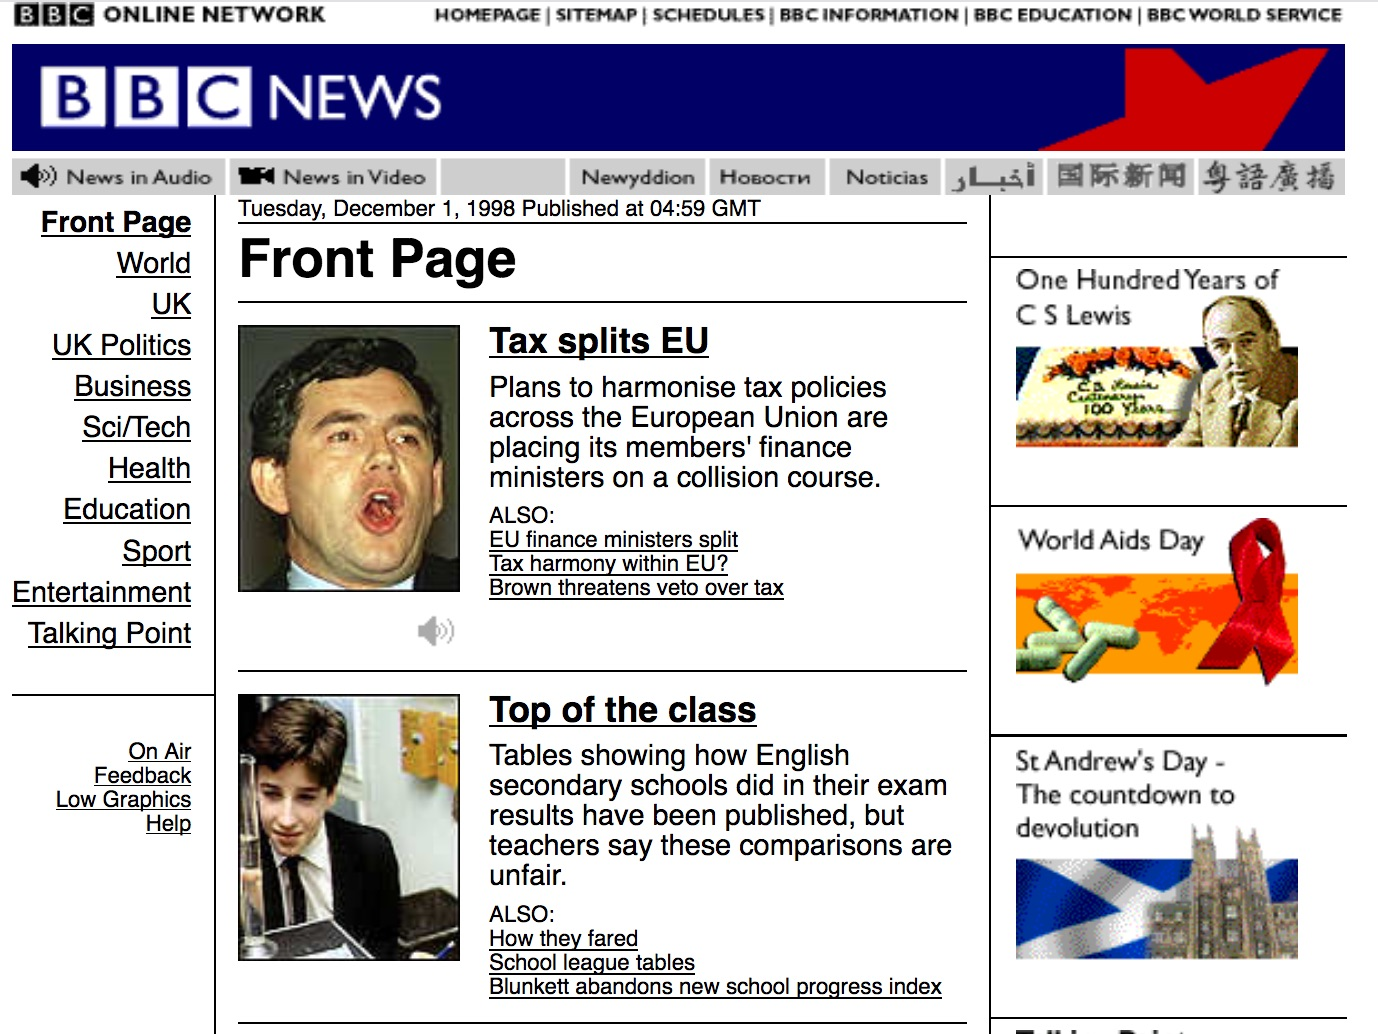 BBC.co.uk news homepage (1998)